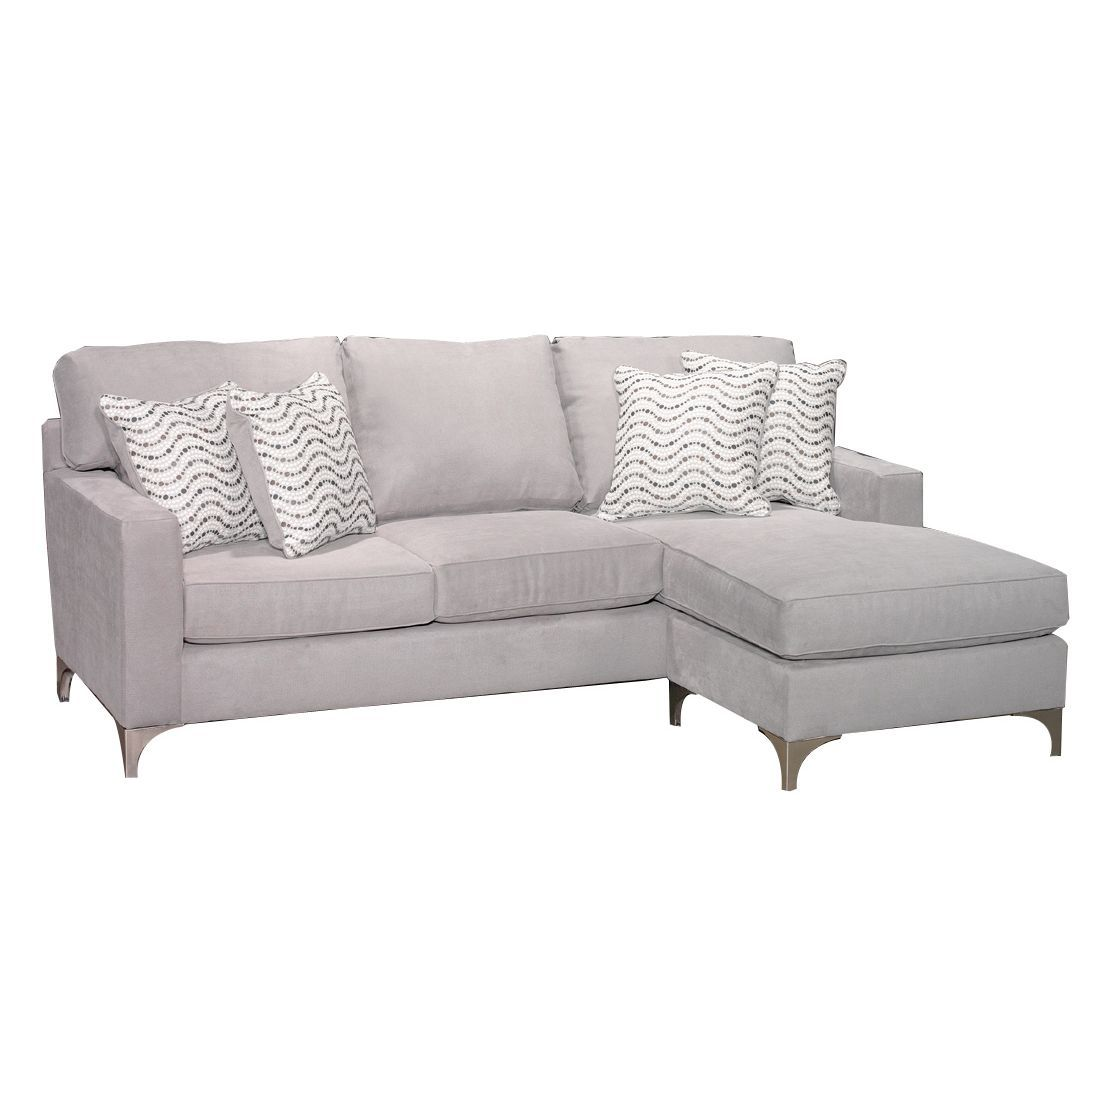 Swell Contemporary Gray Sofa Chaise Tessa Chaise Sofa Couch Camellatalisay Diy Chair Ideas Camellatalisaycom